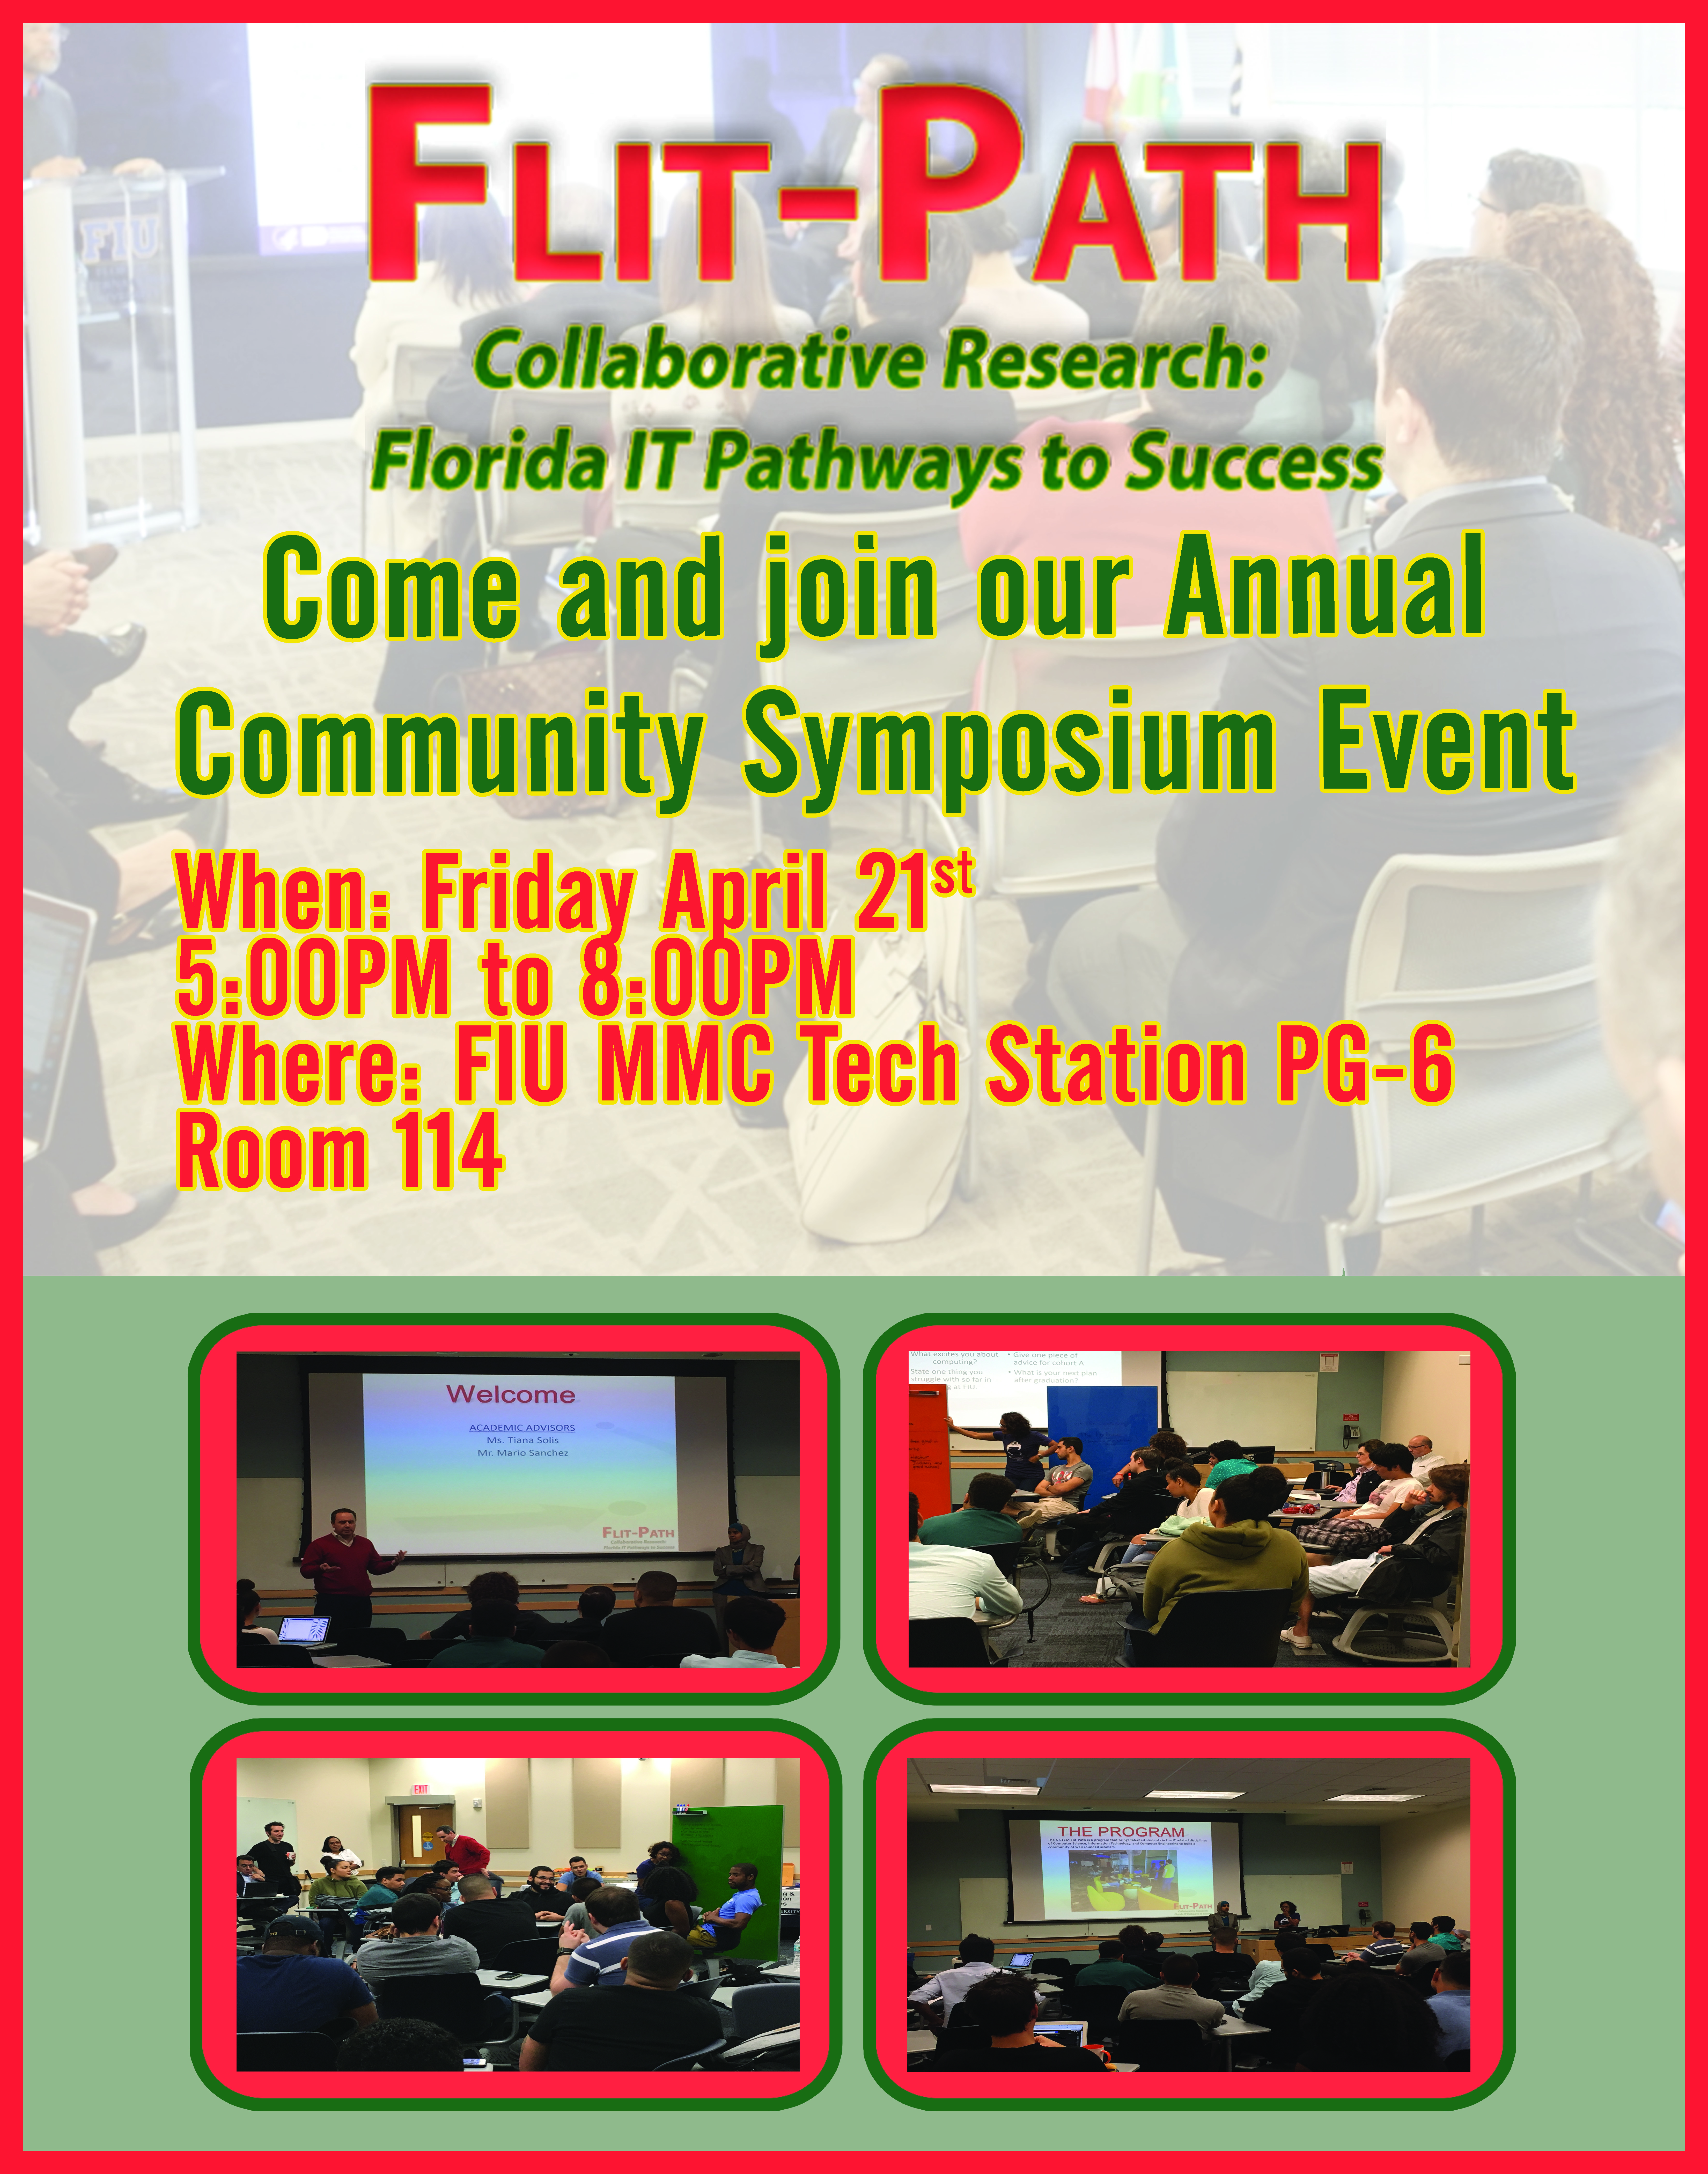 Flit-Path Symposium at FIU flyer